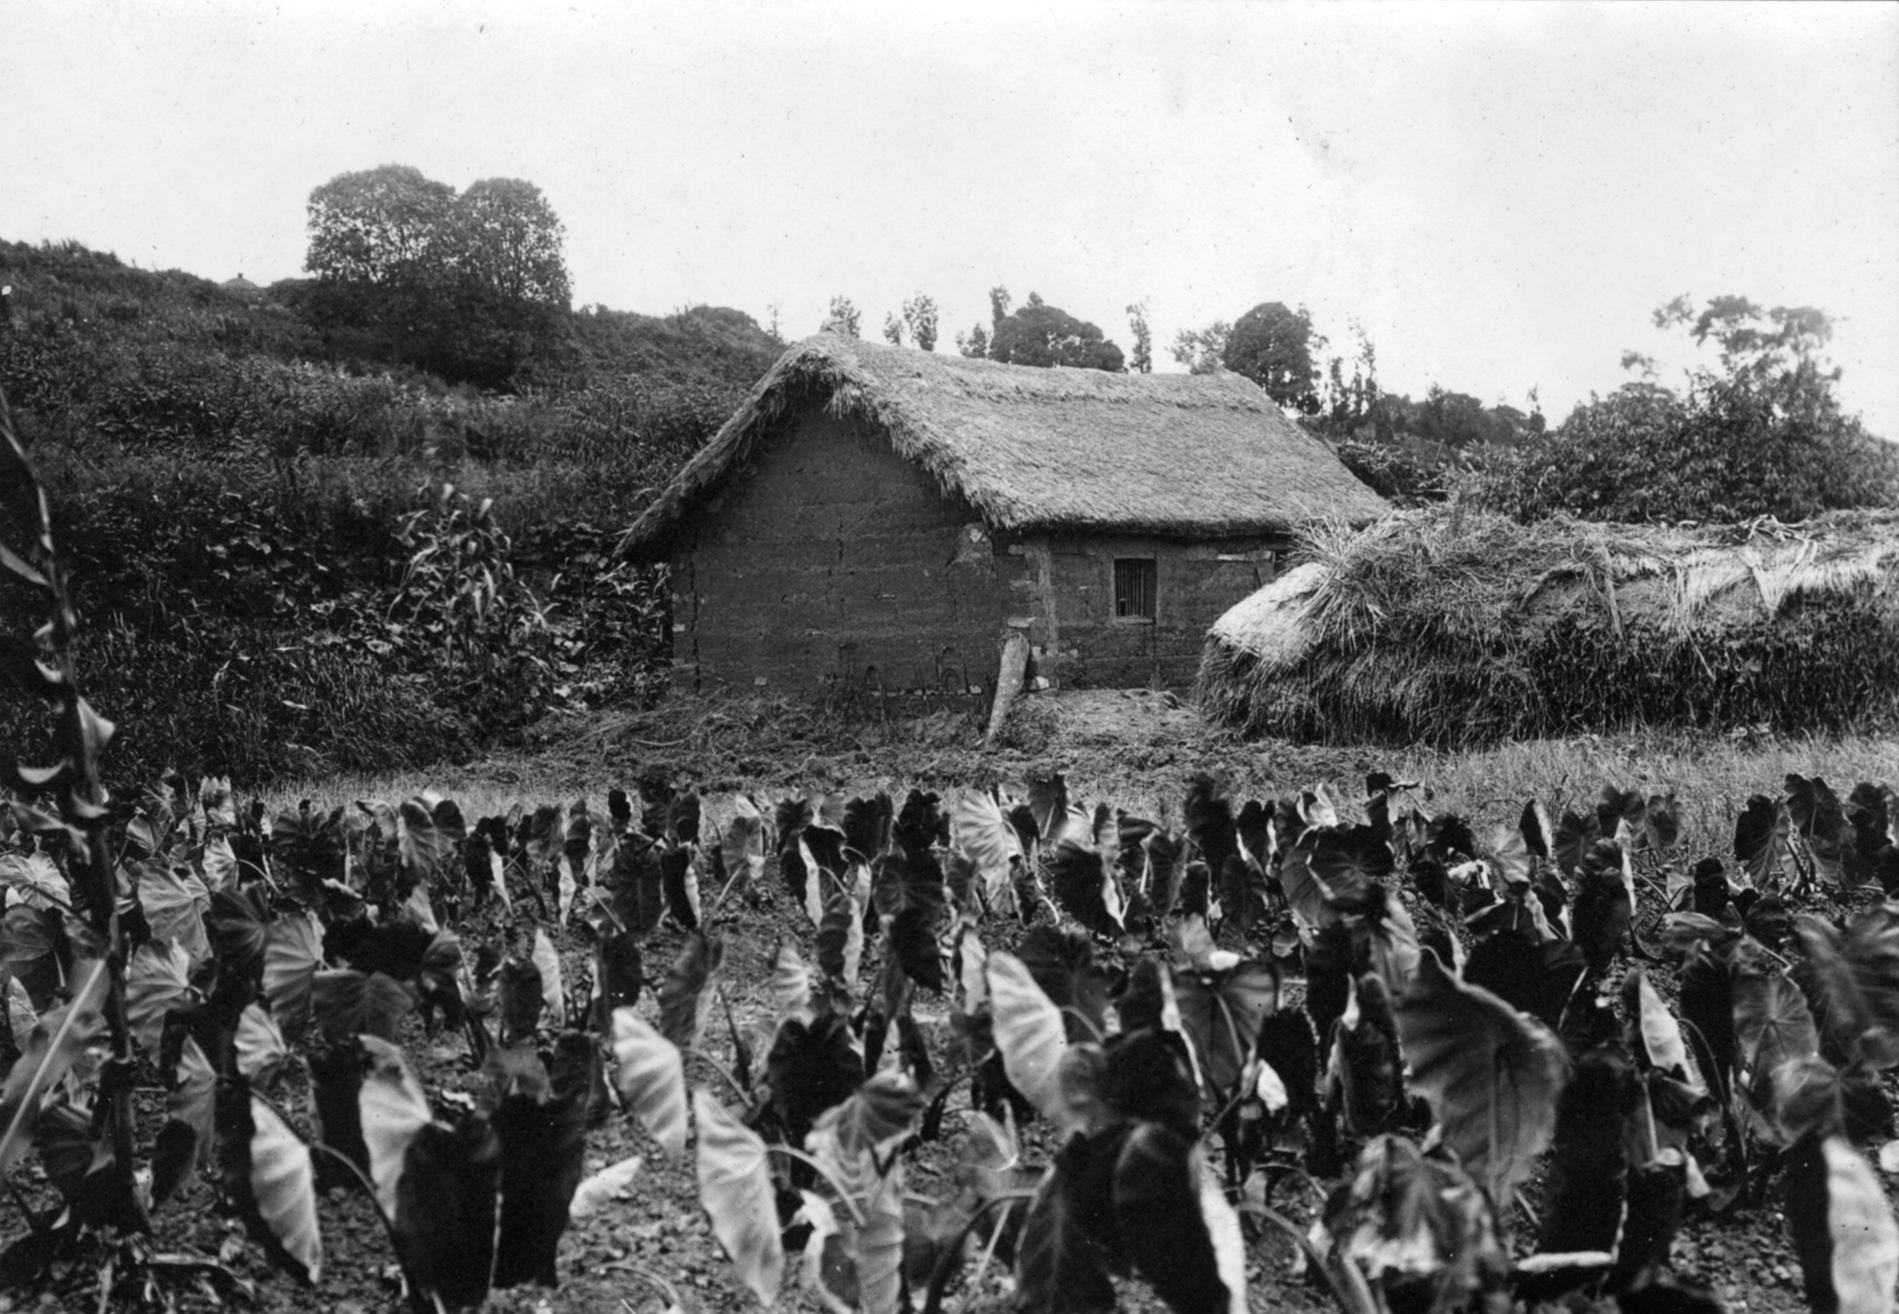 File:Taro field near Nanjing, China, 1921.jpg - Wikimedia Commons